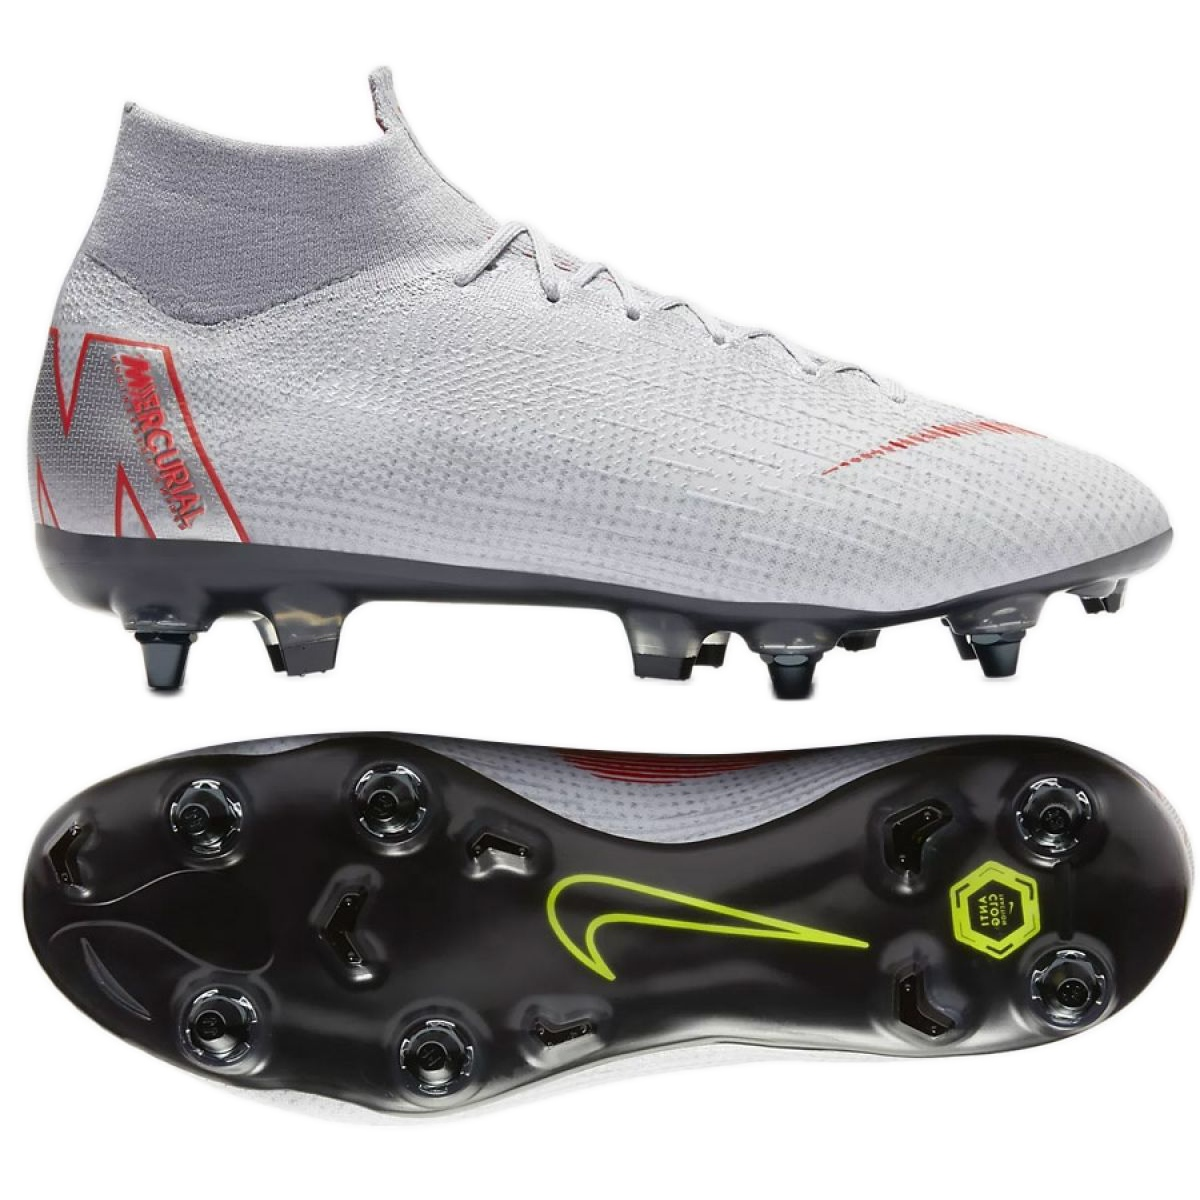 online store dec0a 6dc06 Football shoes Nike Mercurial Superfly 6 Elite SG-Pro M AH7366-060